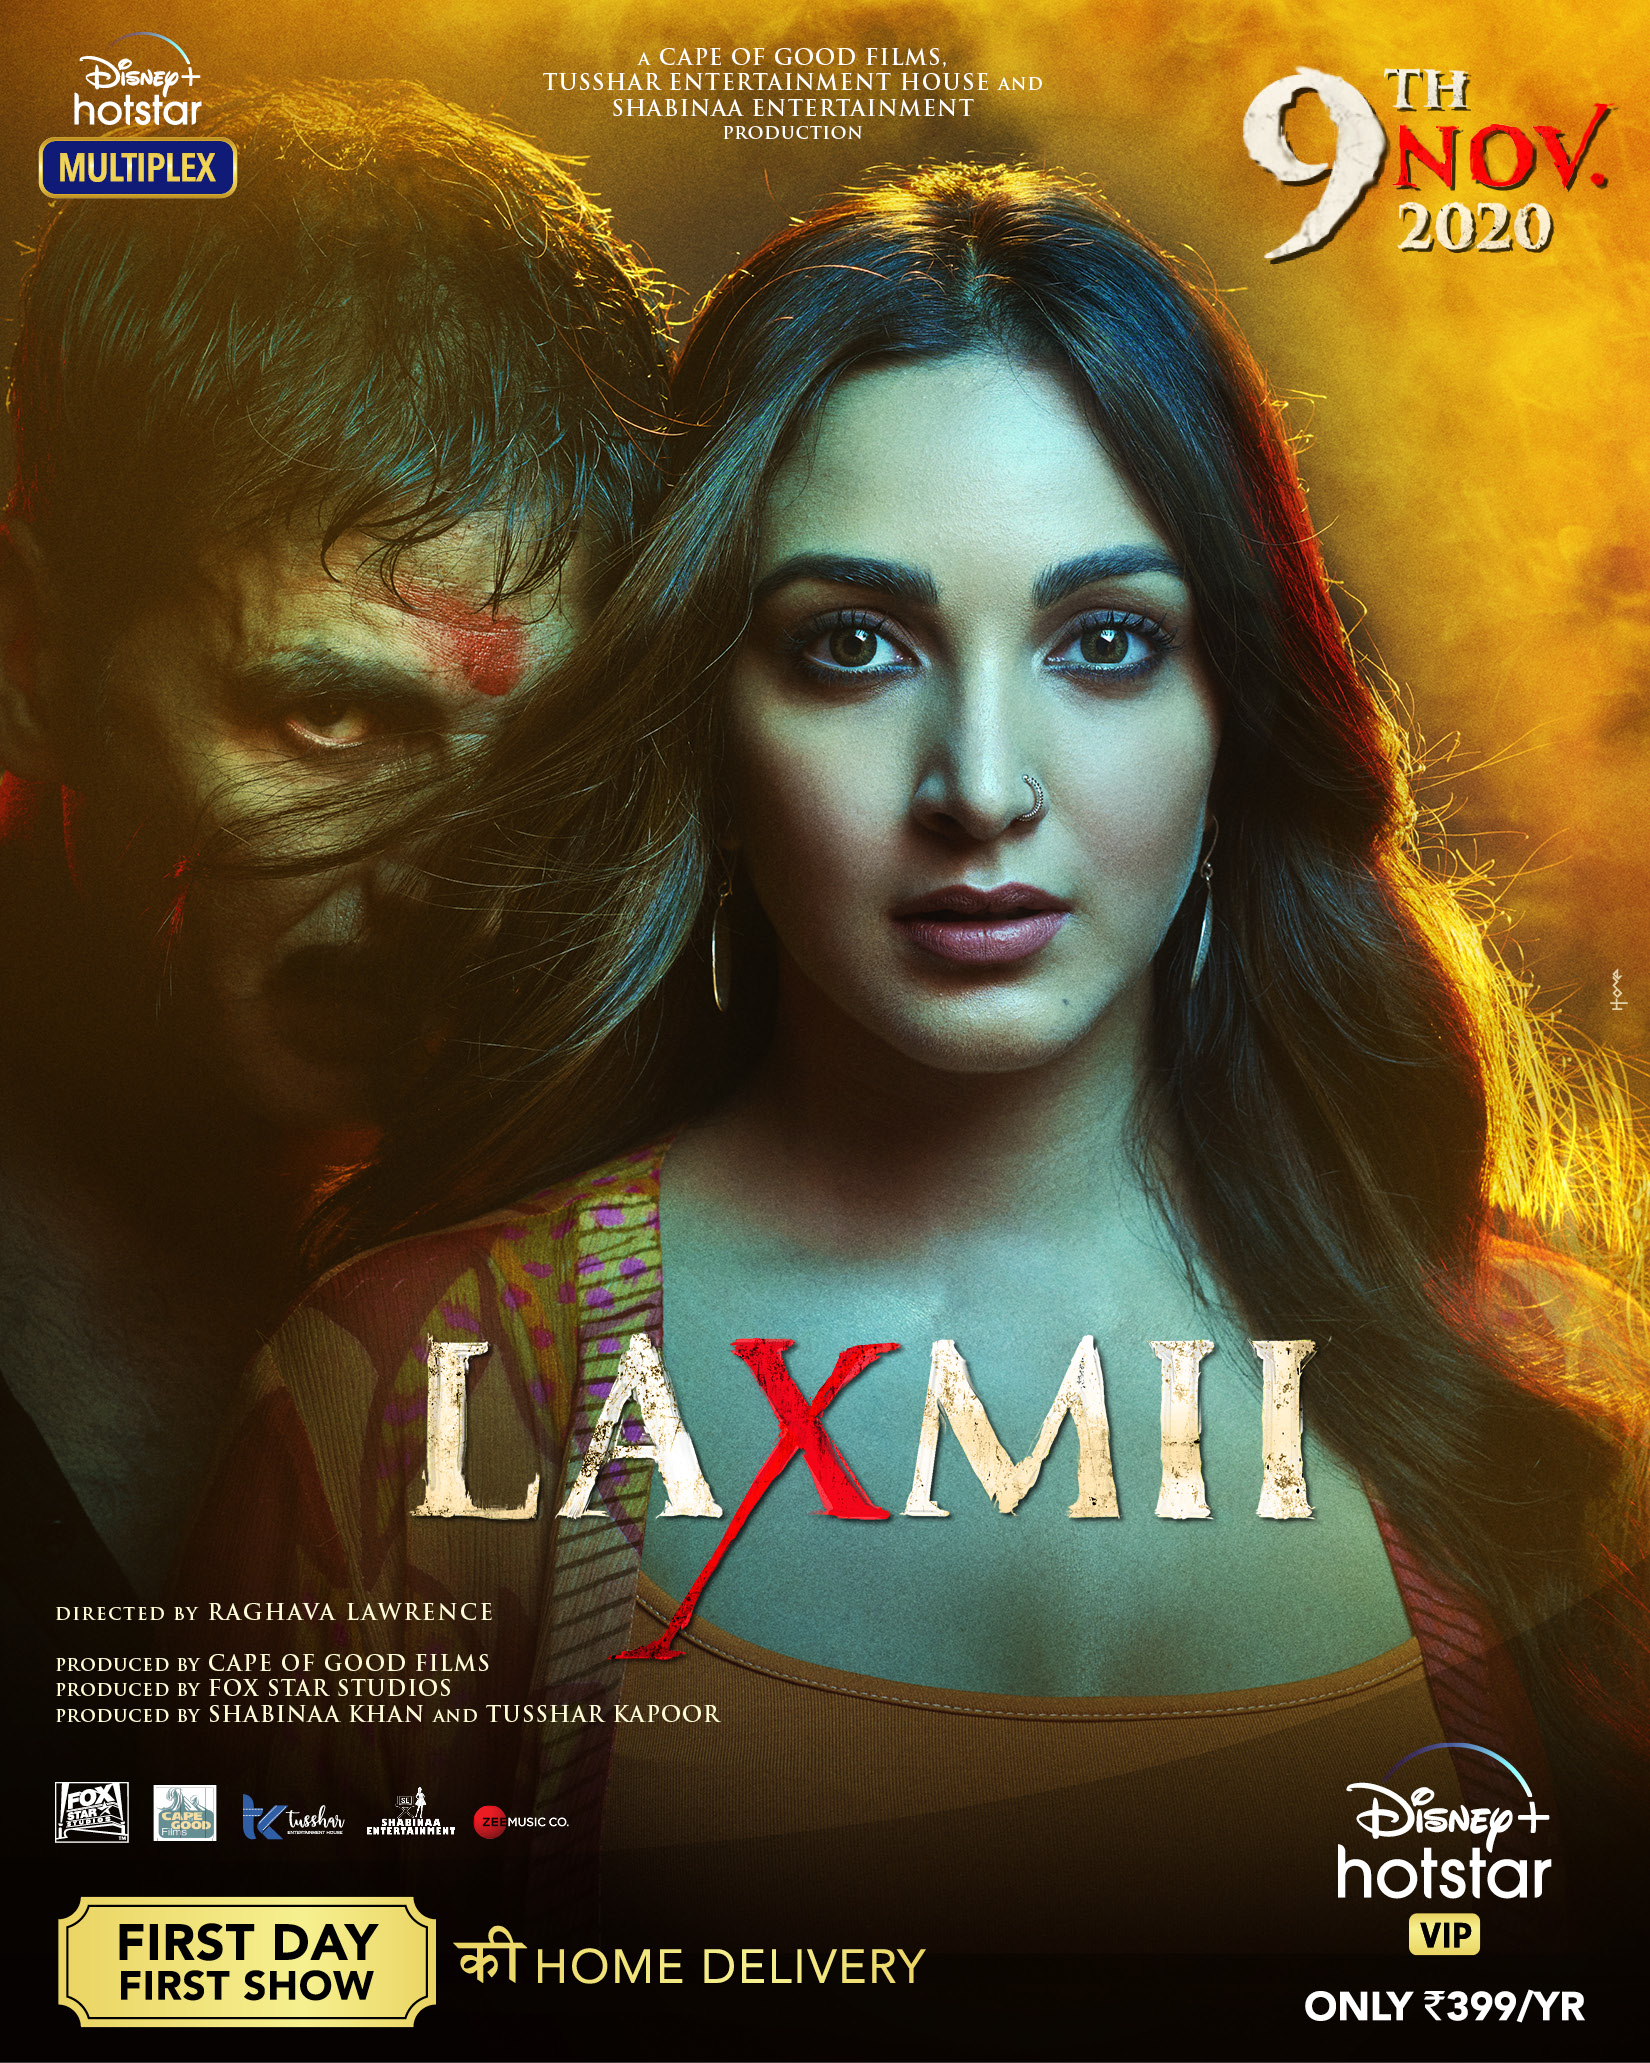 LAXMII (2020) Hindi 1080p HEVC DSNP HDRip x265 ESubs Free Download